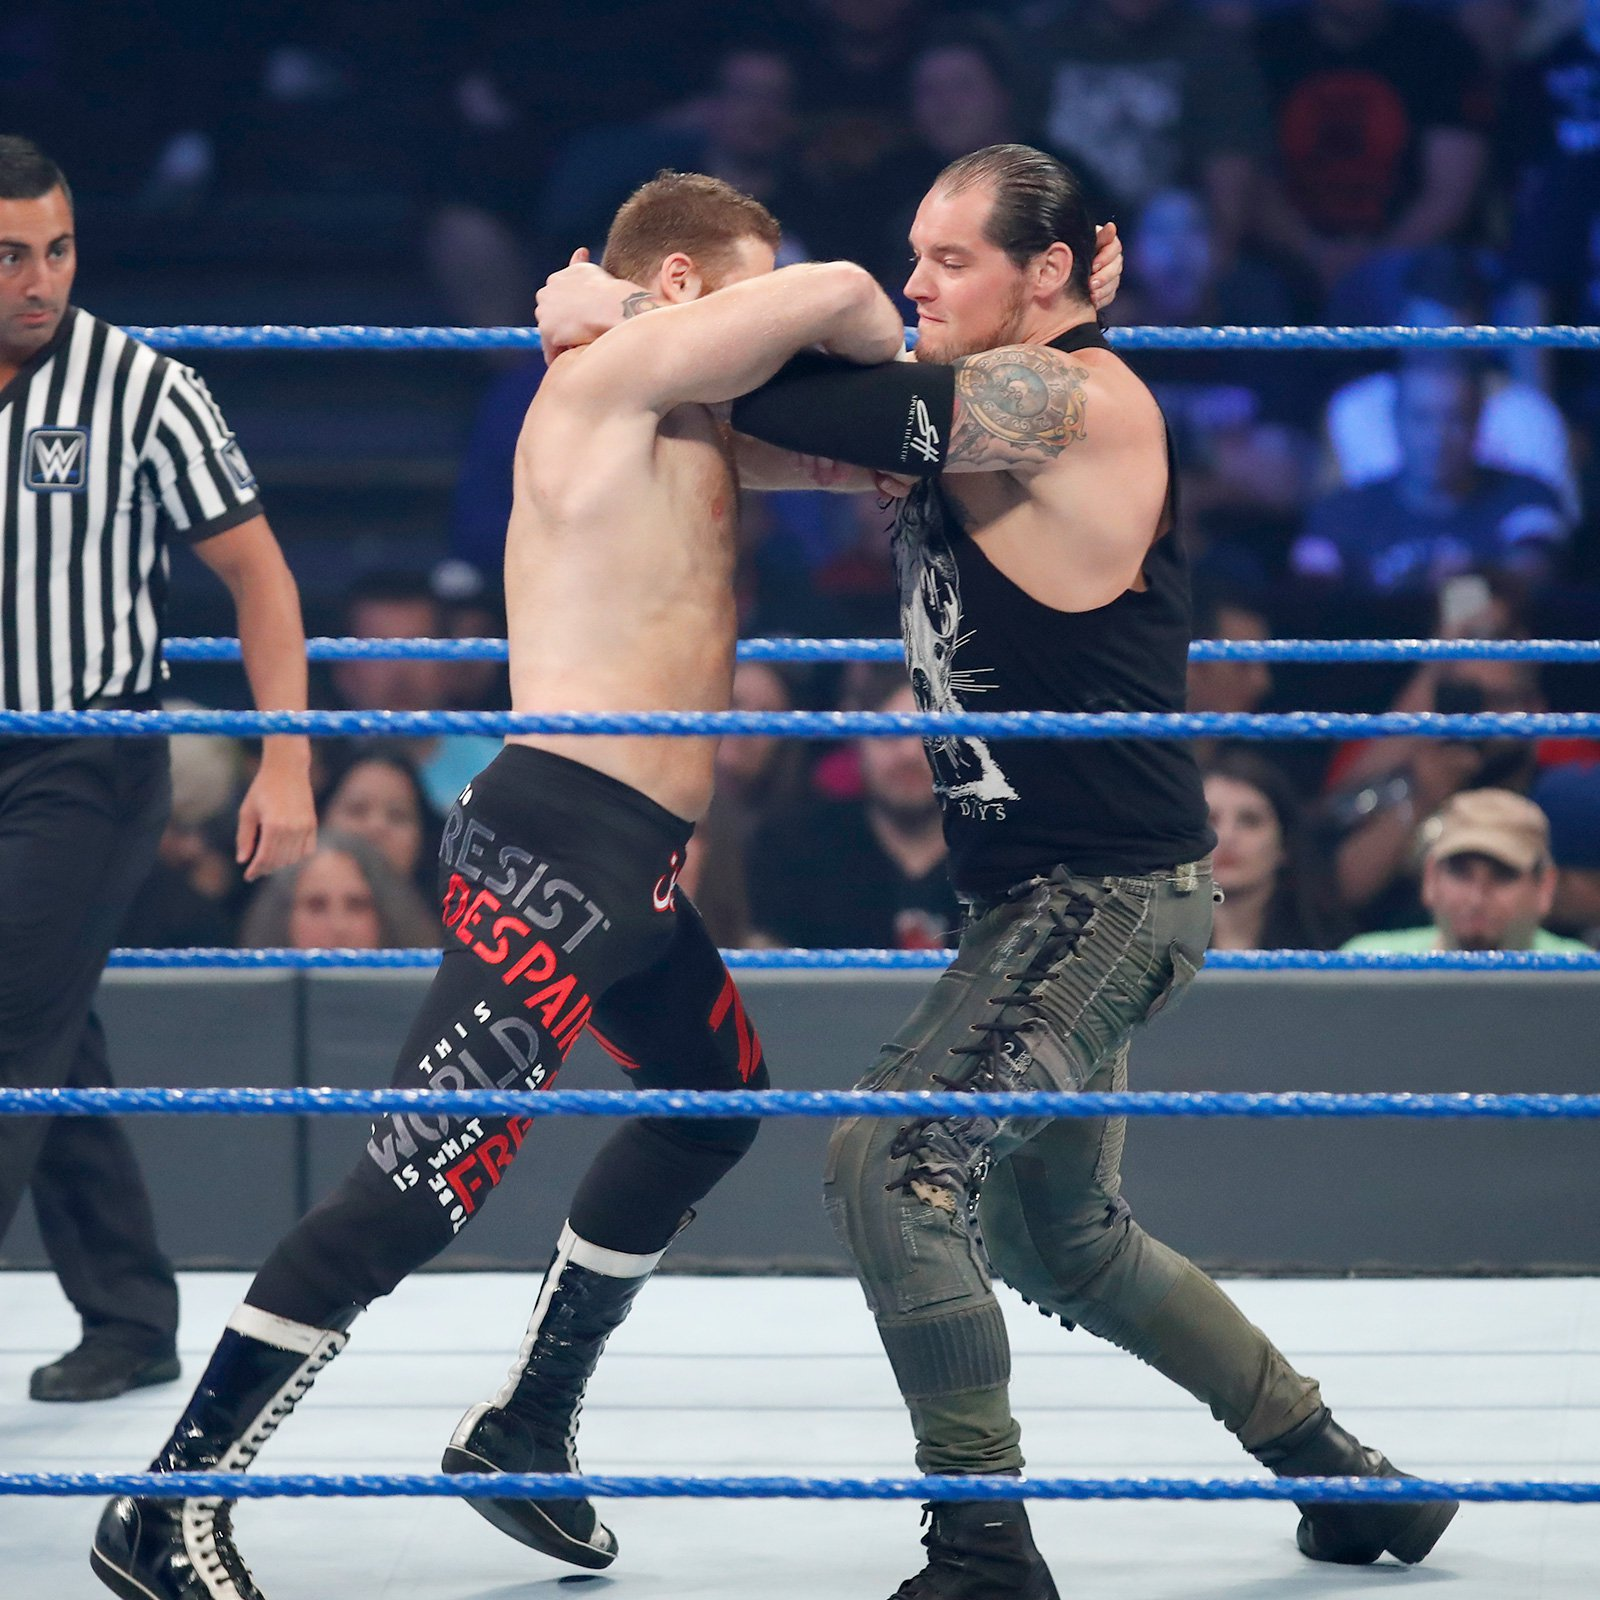 The bitter rivalry between Baron Corbin and Sami Zayn comes to a head at WWE Backlash.